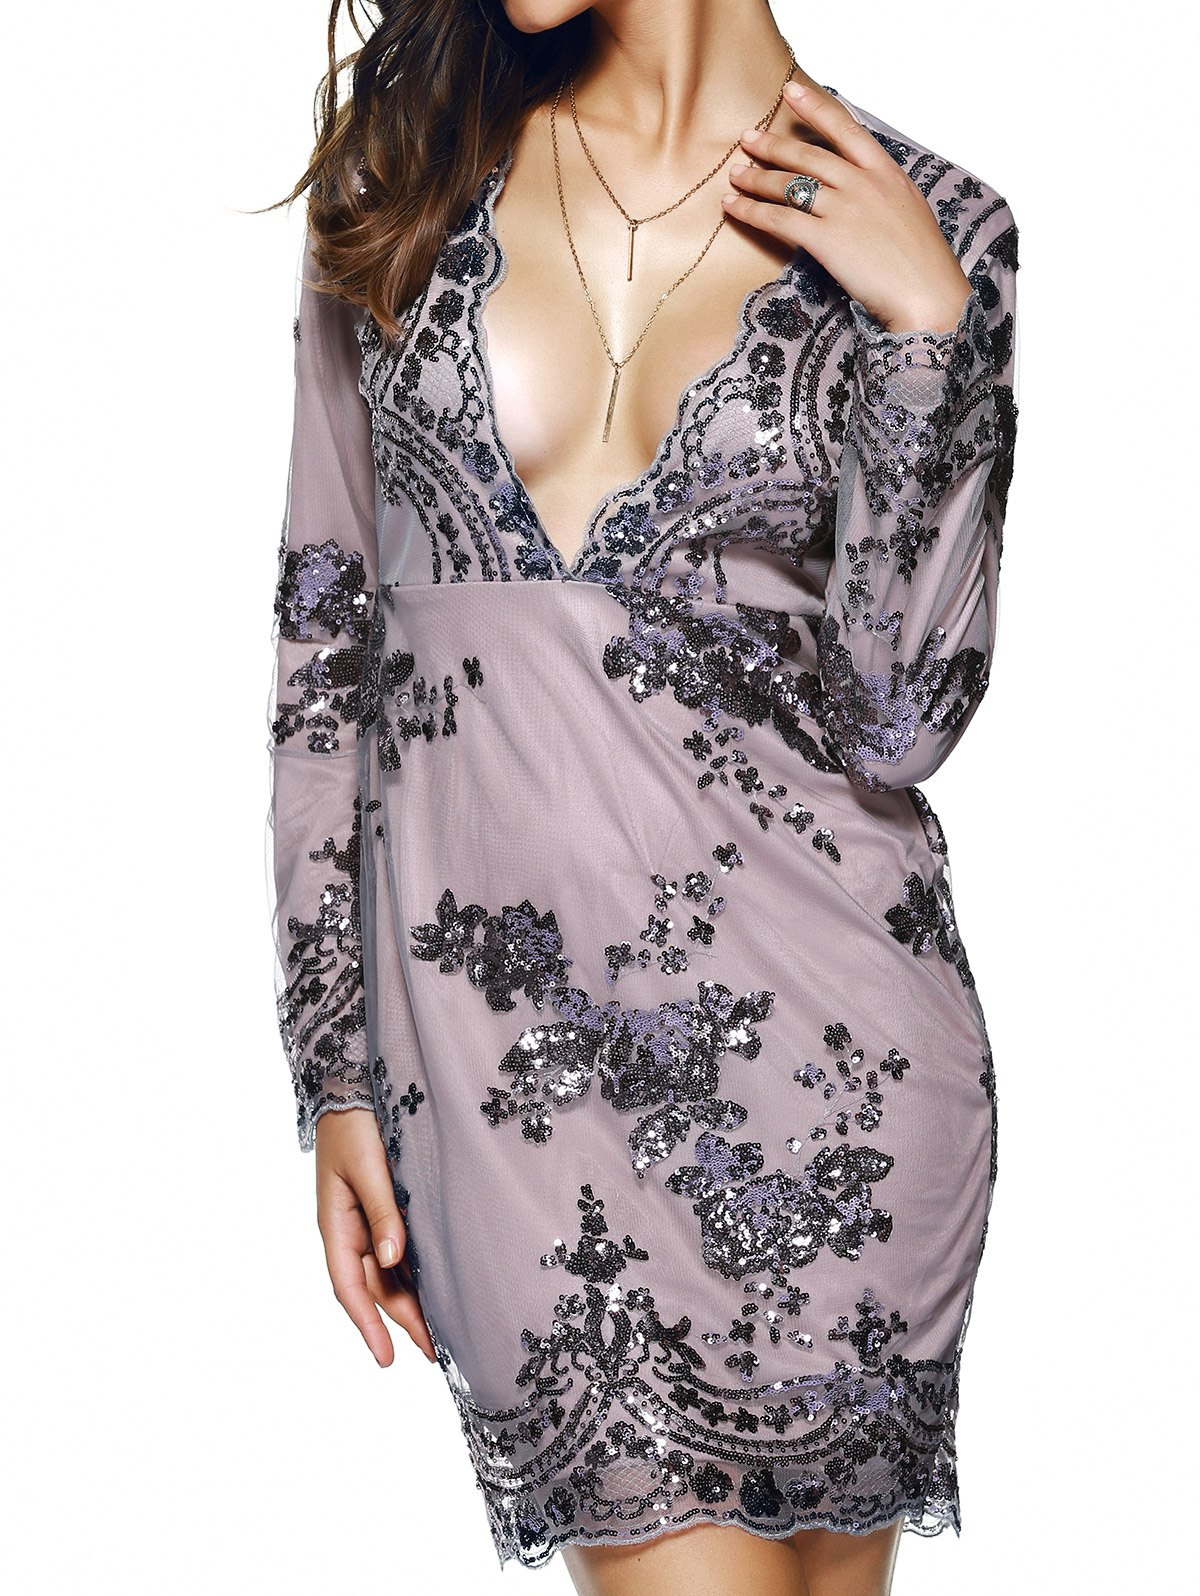 Plunge Neck Sequined Long Sleeve DressClothes<br><br><br>Size: M<br>Color: PURPLE